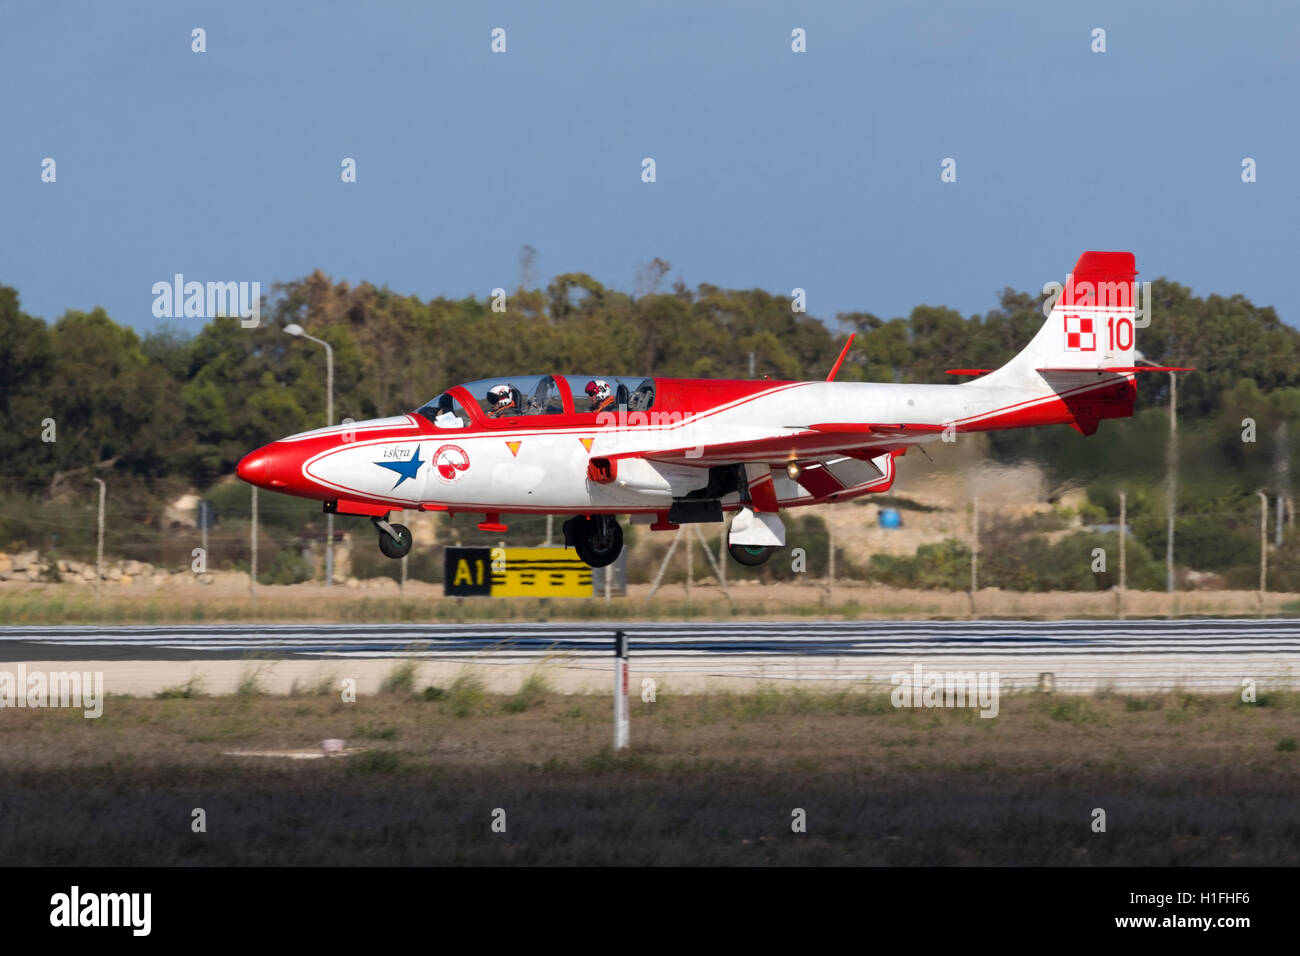 Polish Air Force PZL-Mielec TS-11 Iskra arriving for the airshow the coming weekend. - Stock Image